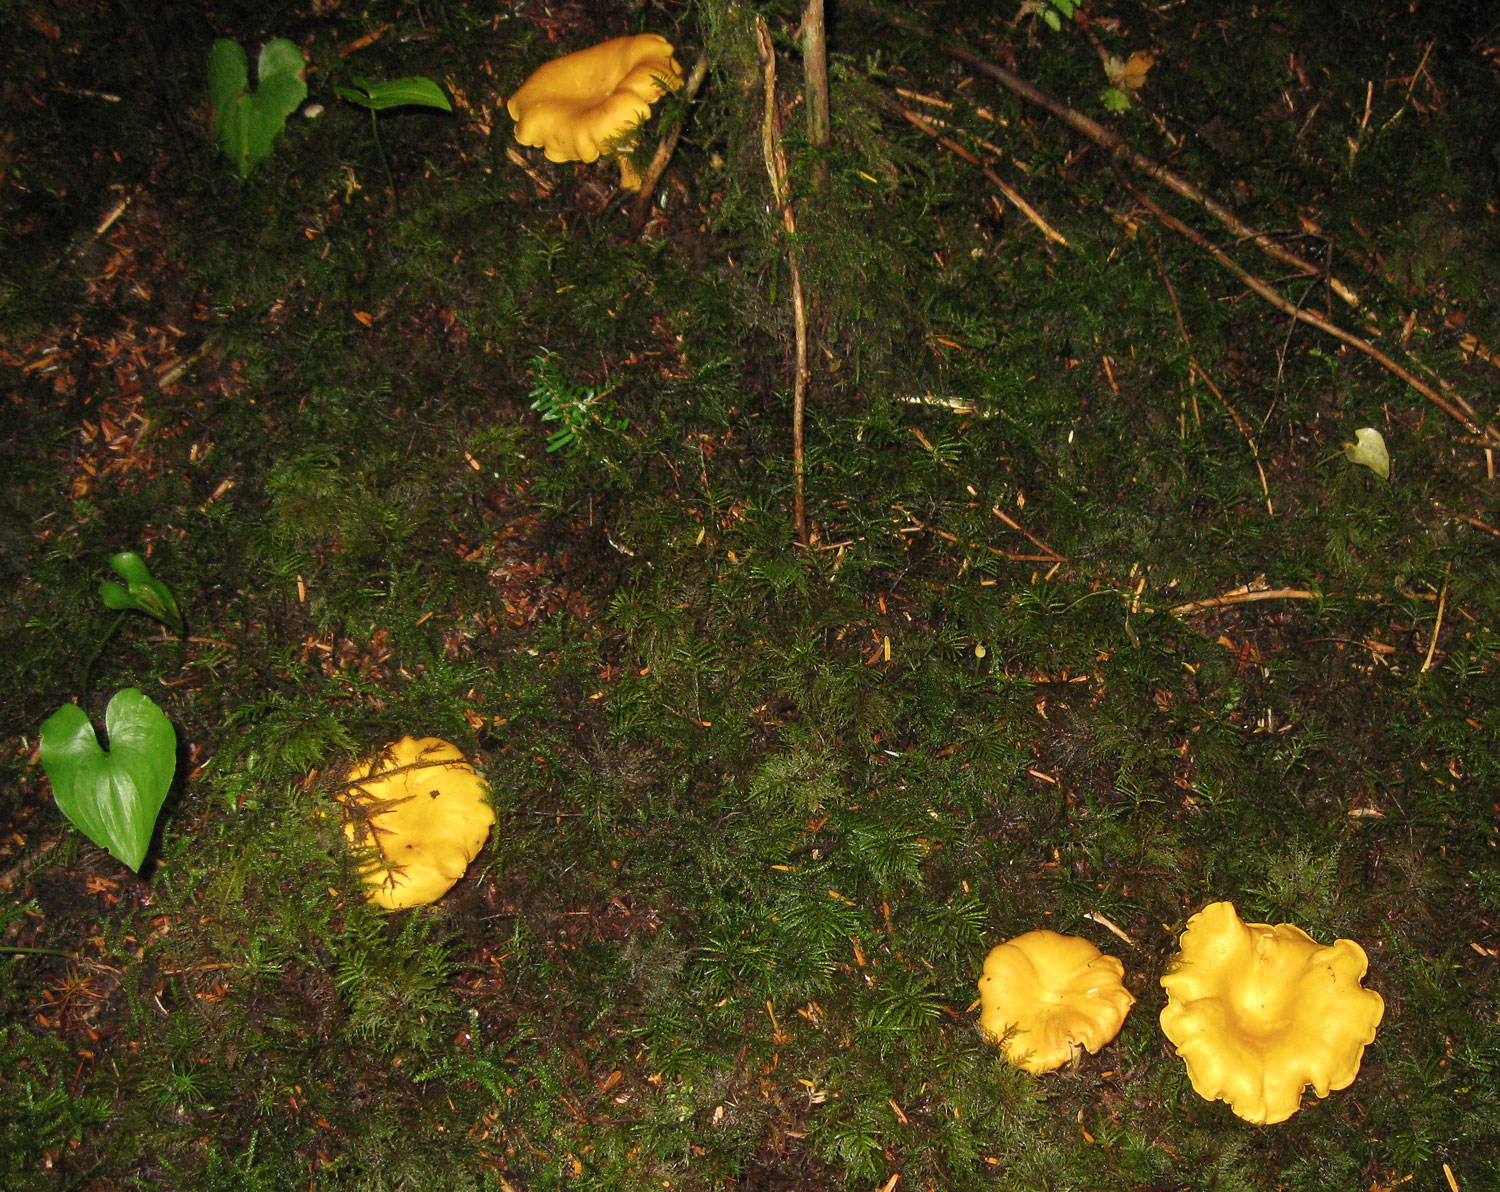 Golden chanterelles are a splash of color in the forest.